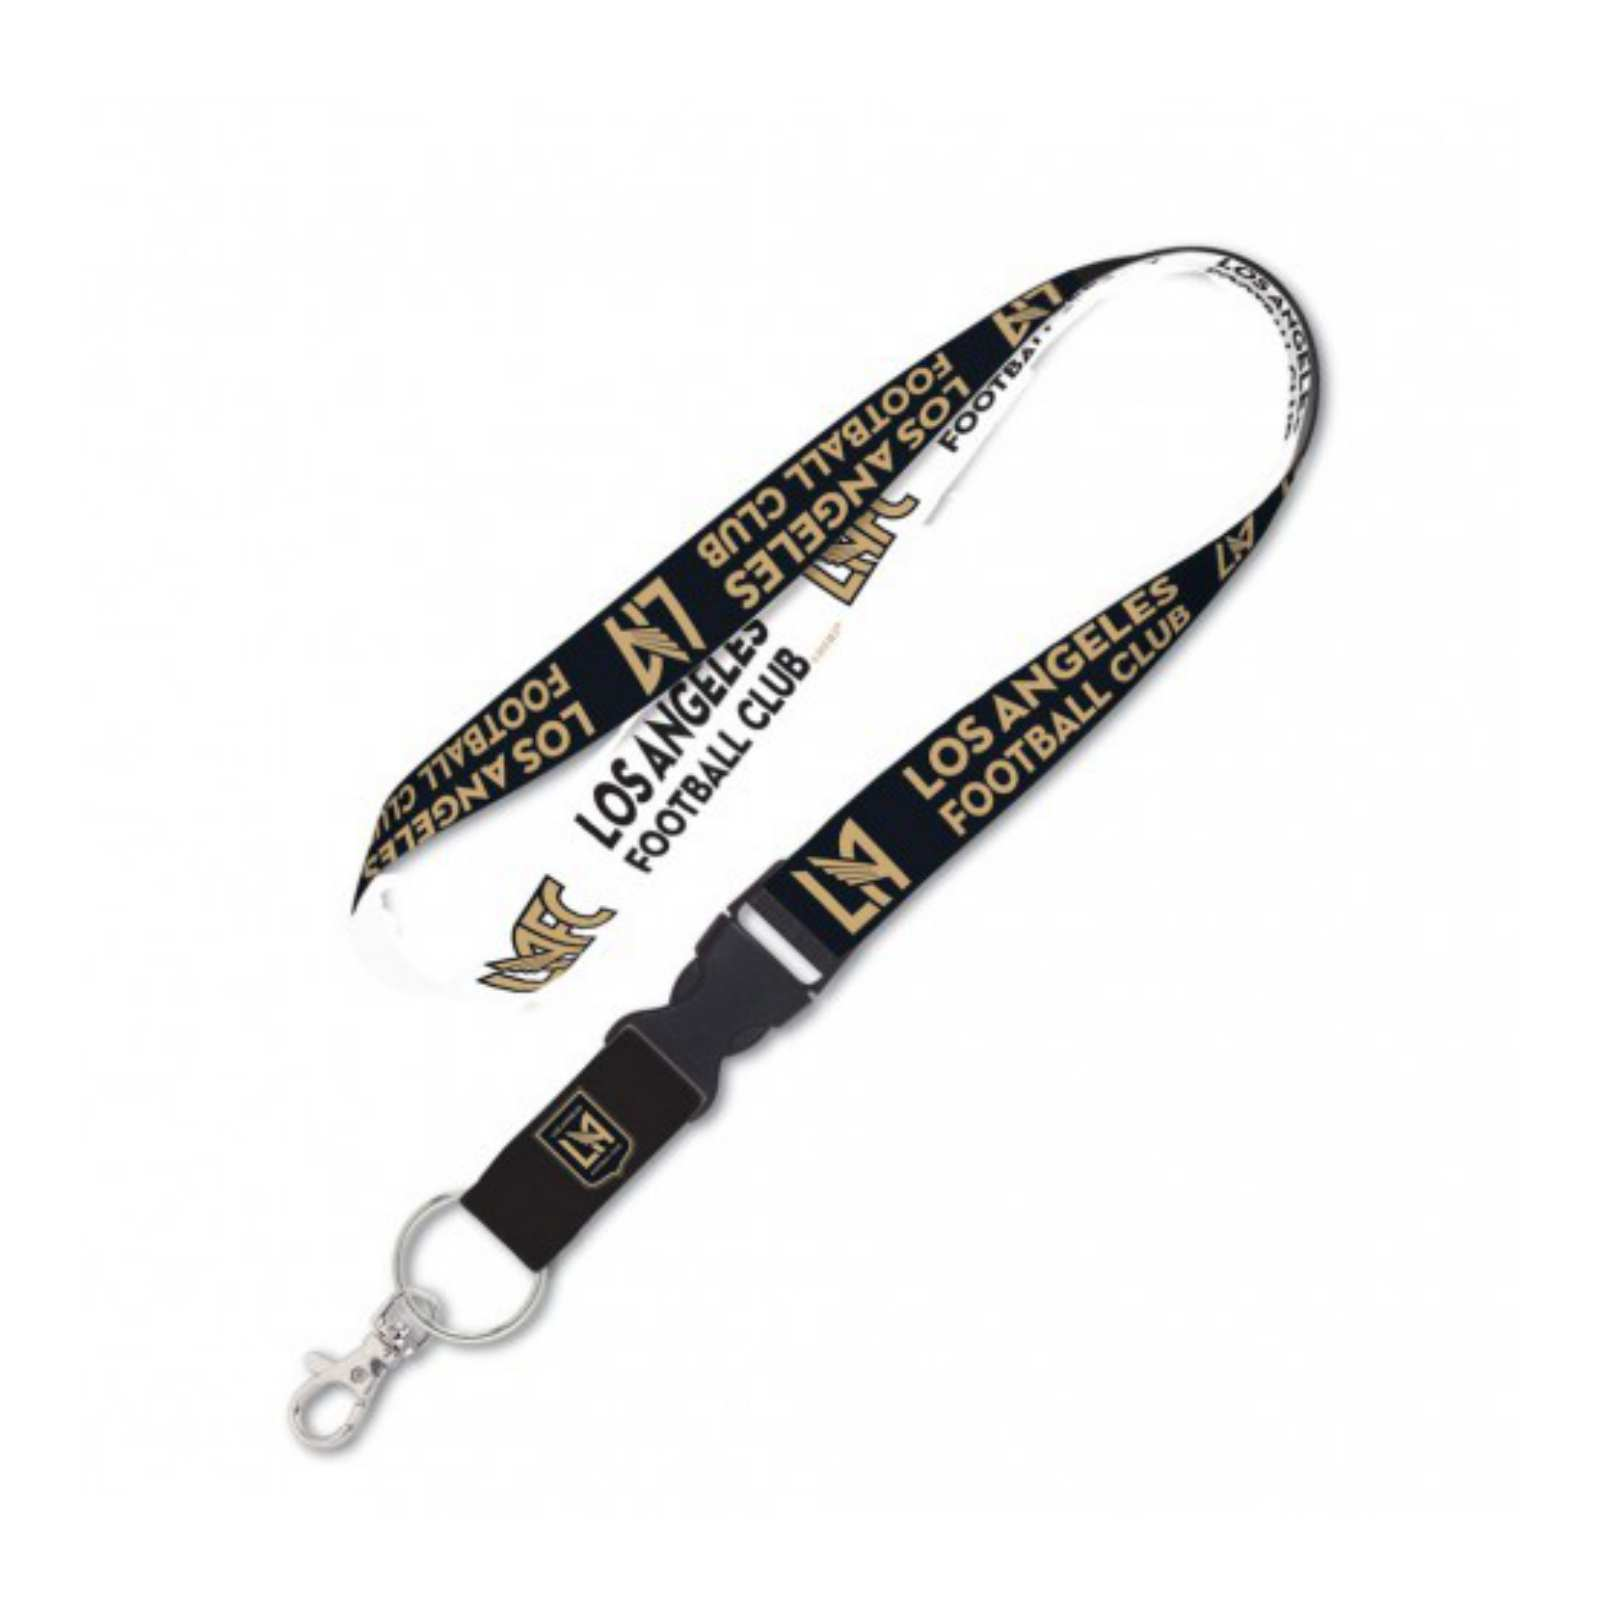 Los Angeles FC WinCraft Black & White Two-Toned Durable Buckle Lanyard